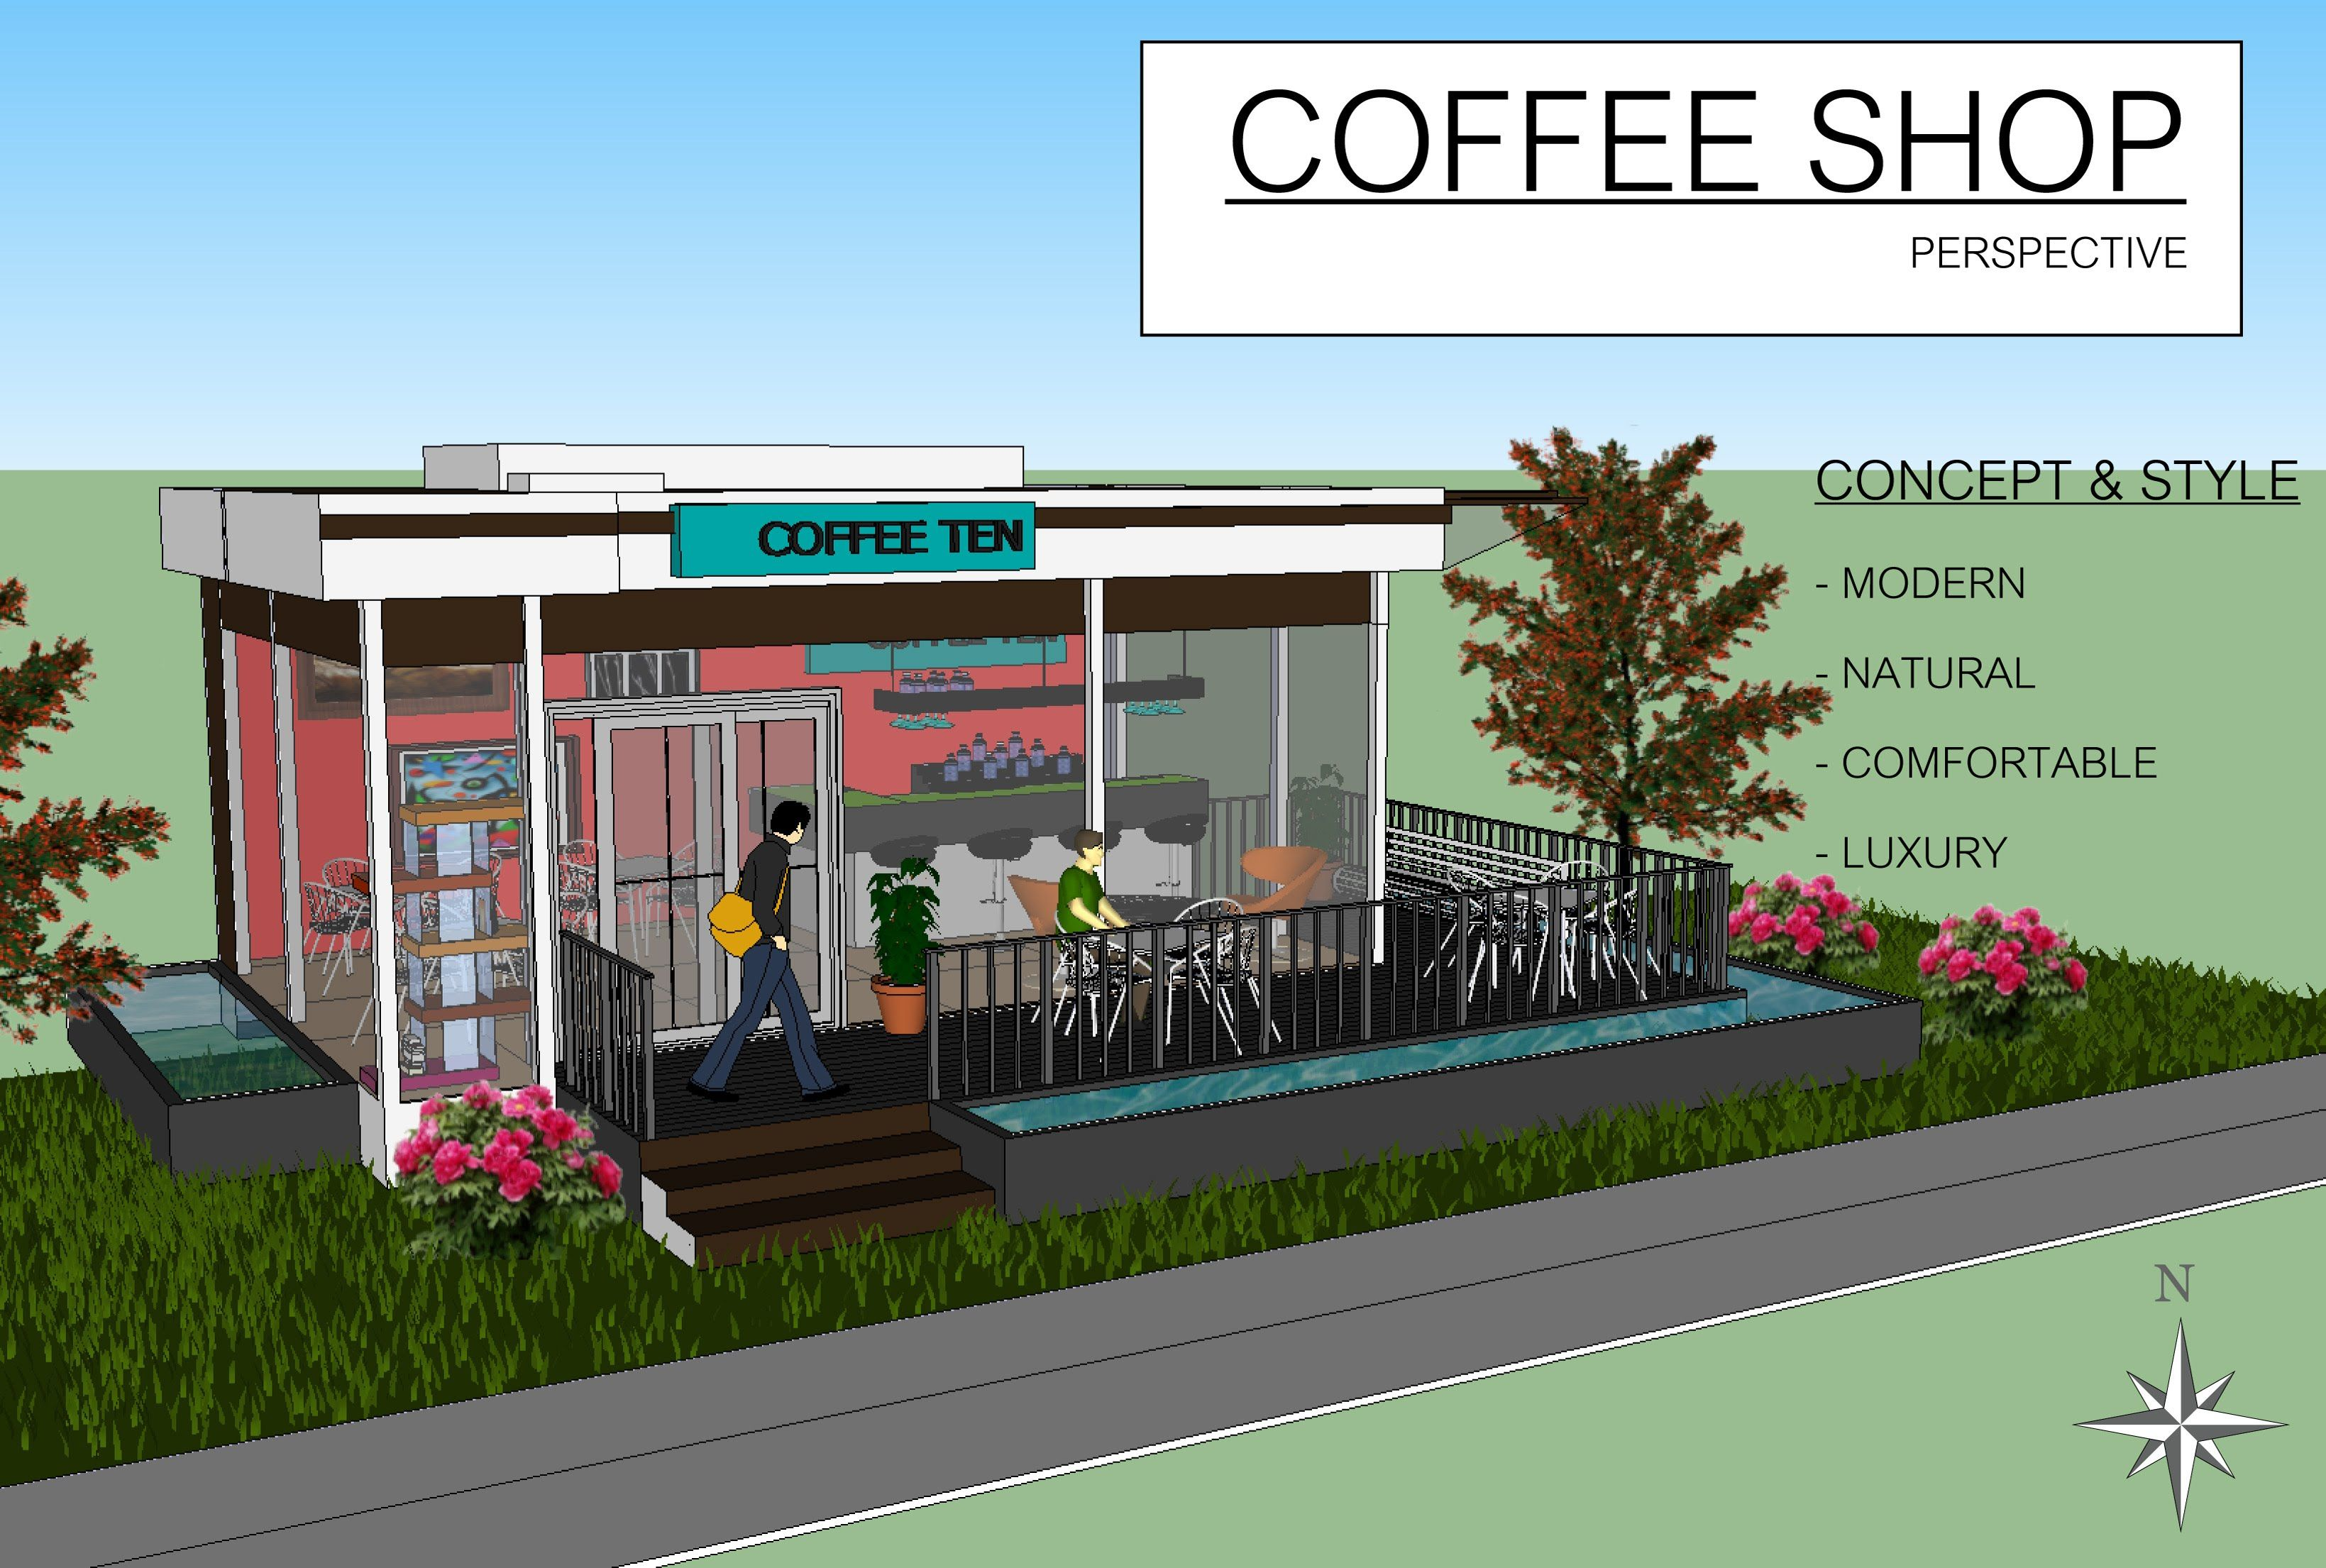 City Island coffee business to serve up java and camaraderie